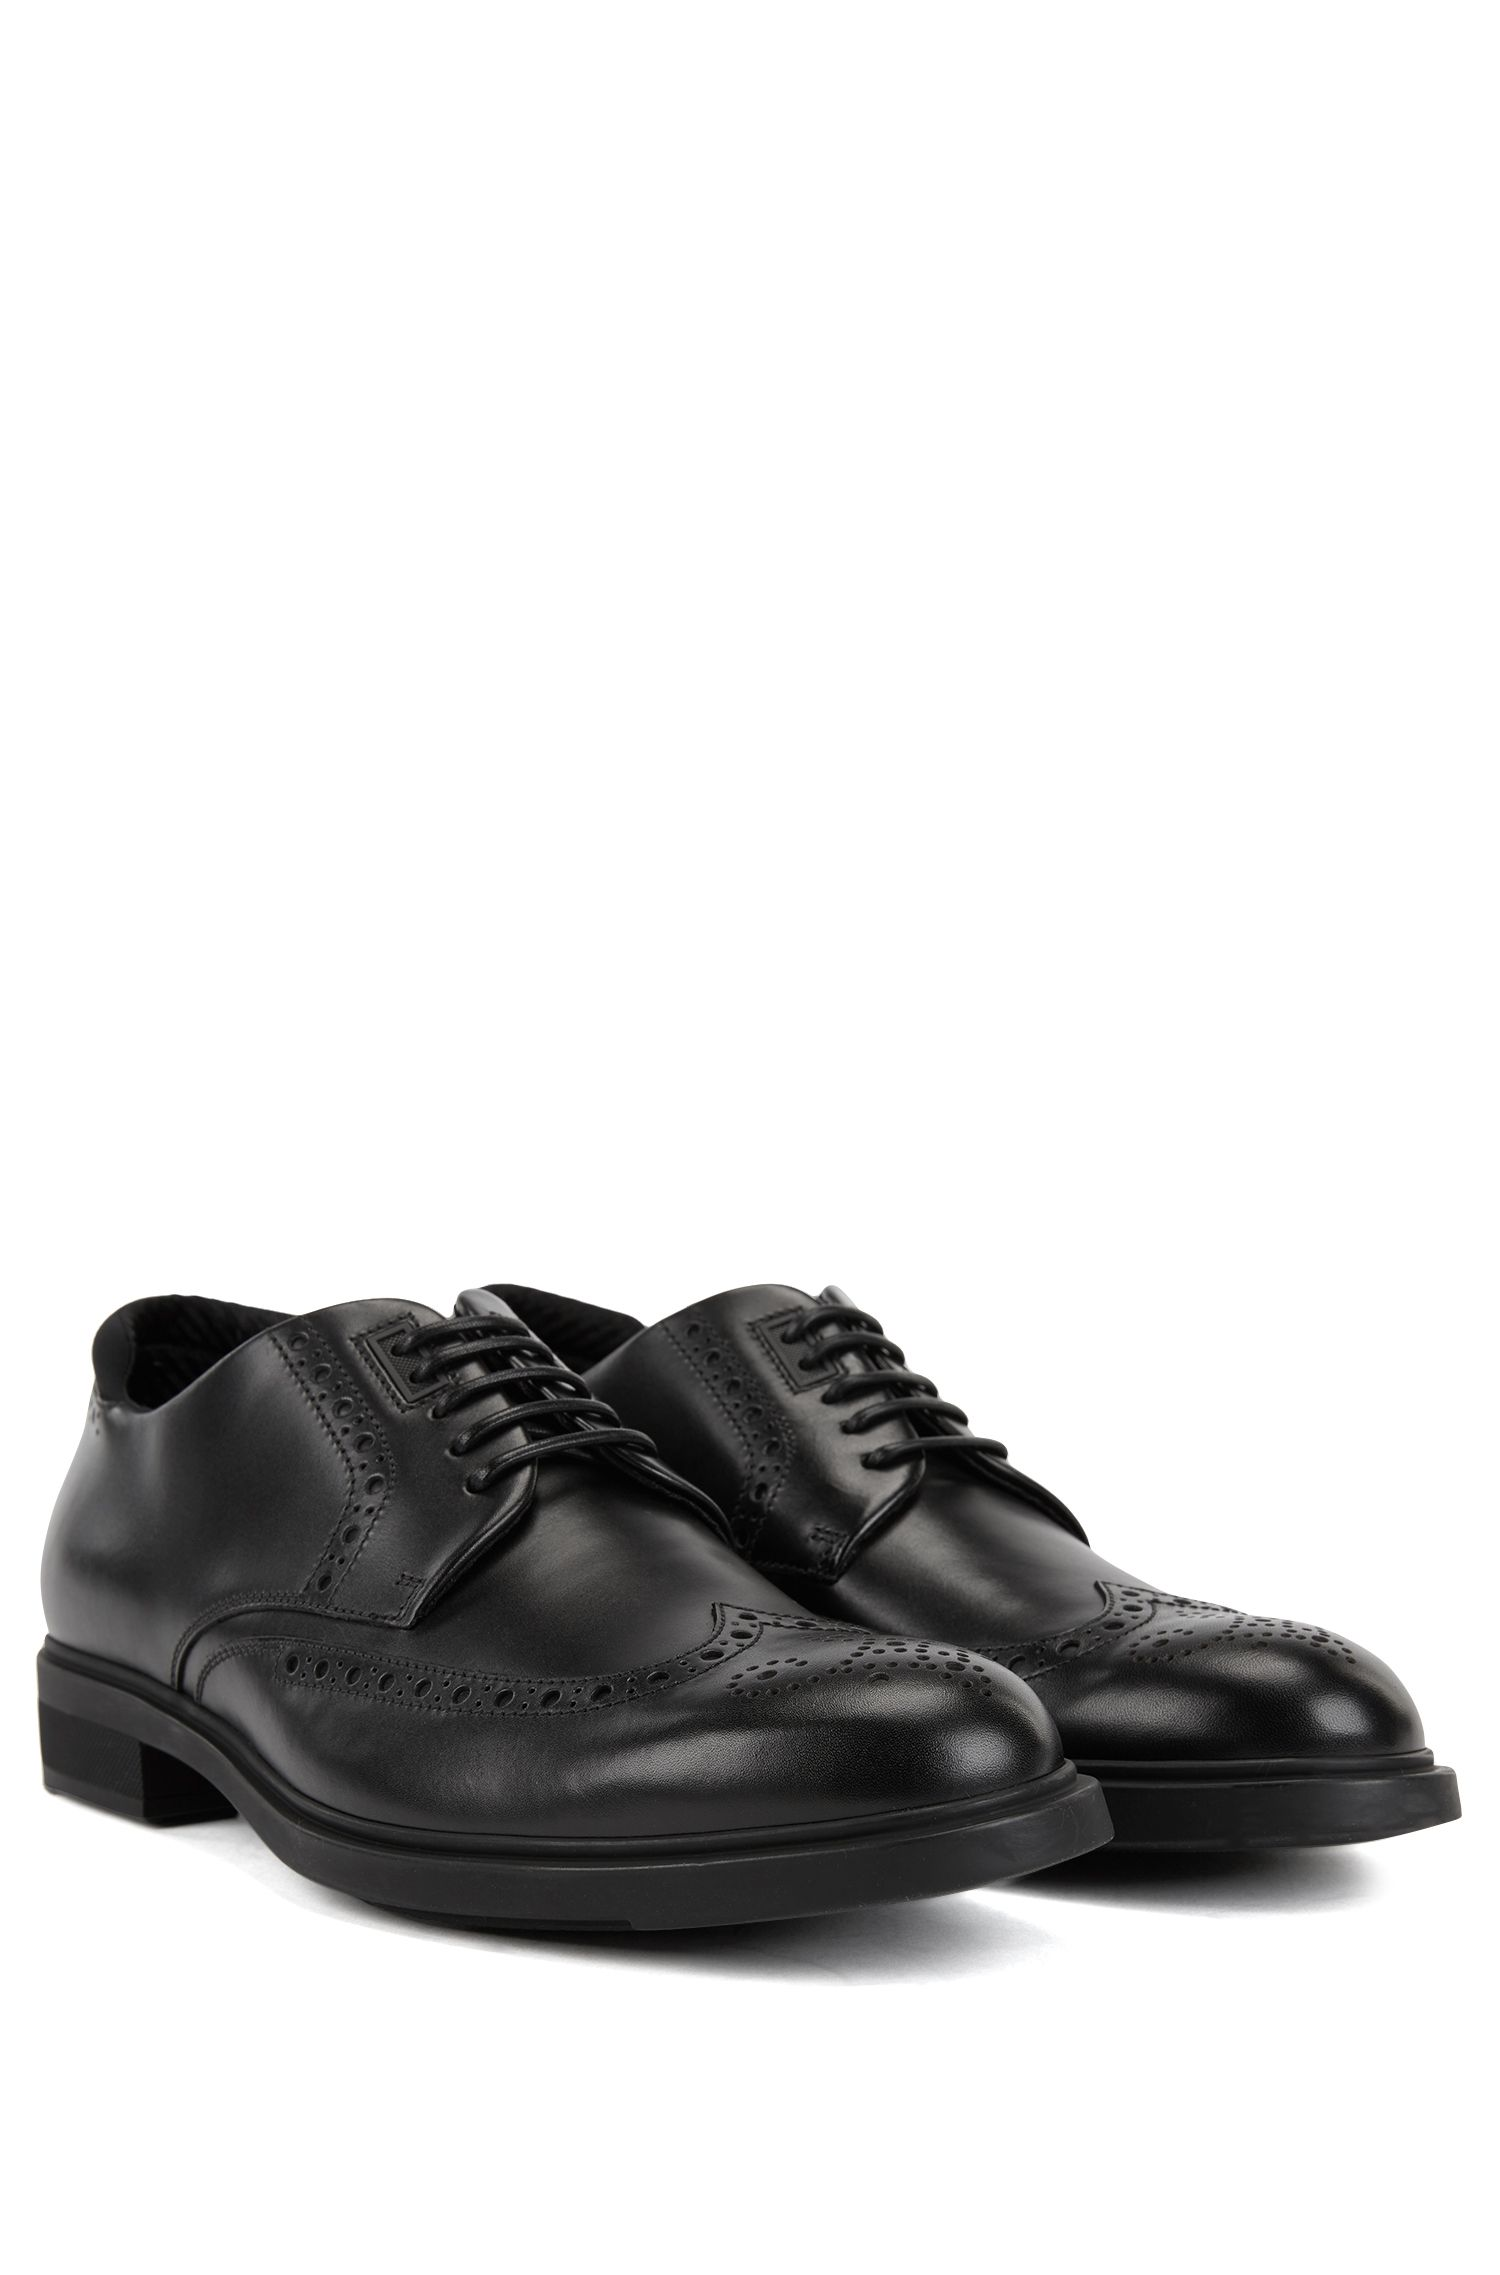 Calf-leather Derby brogue shoes with Outlast lining BOSS